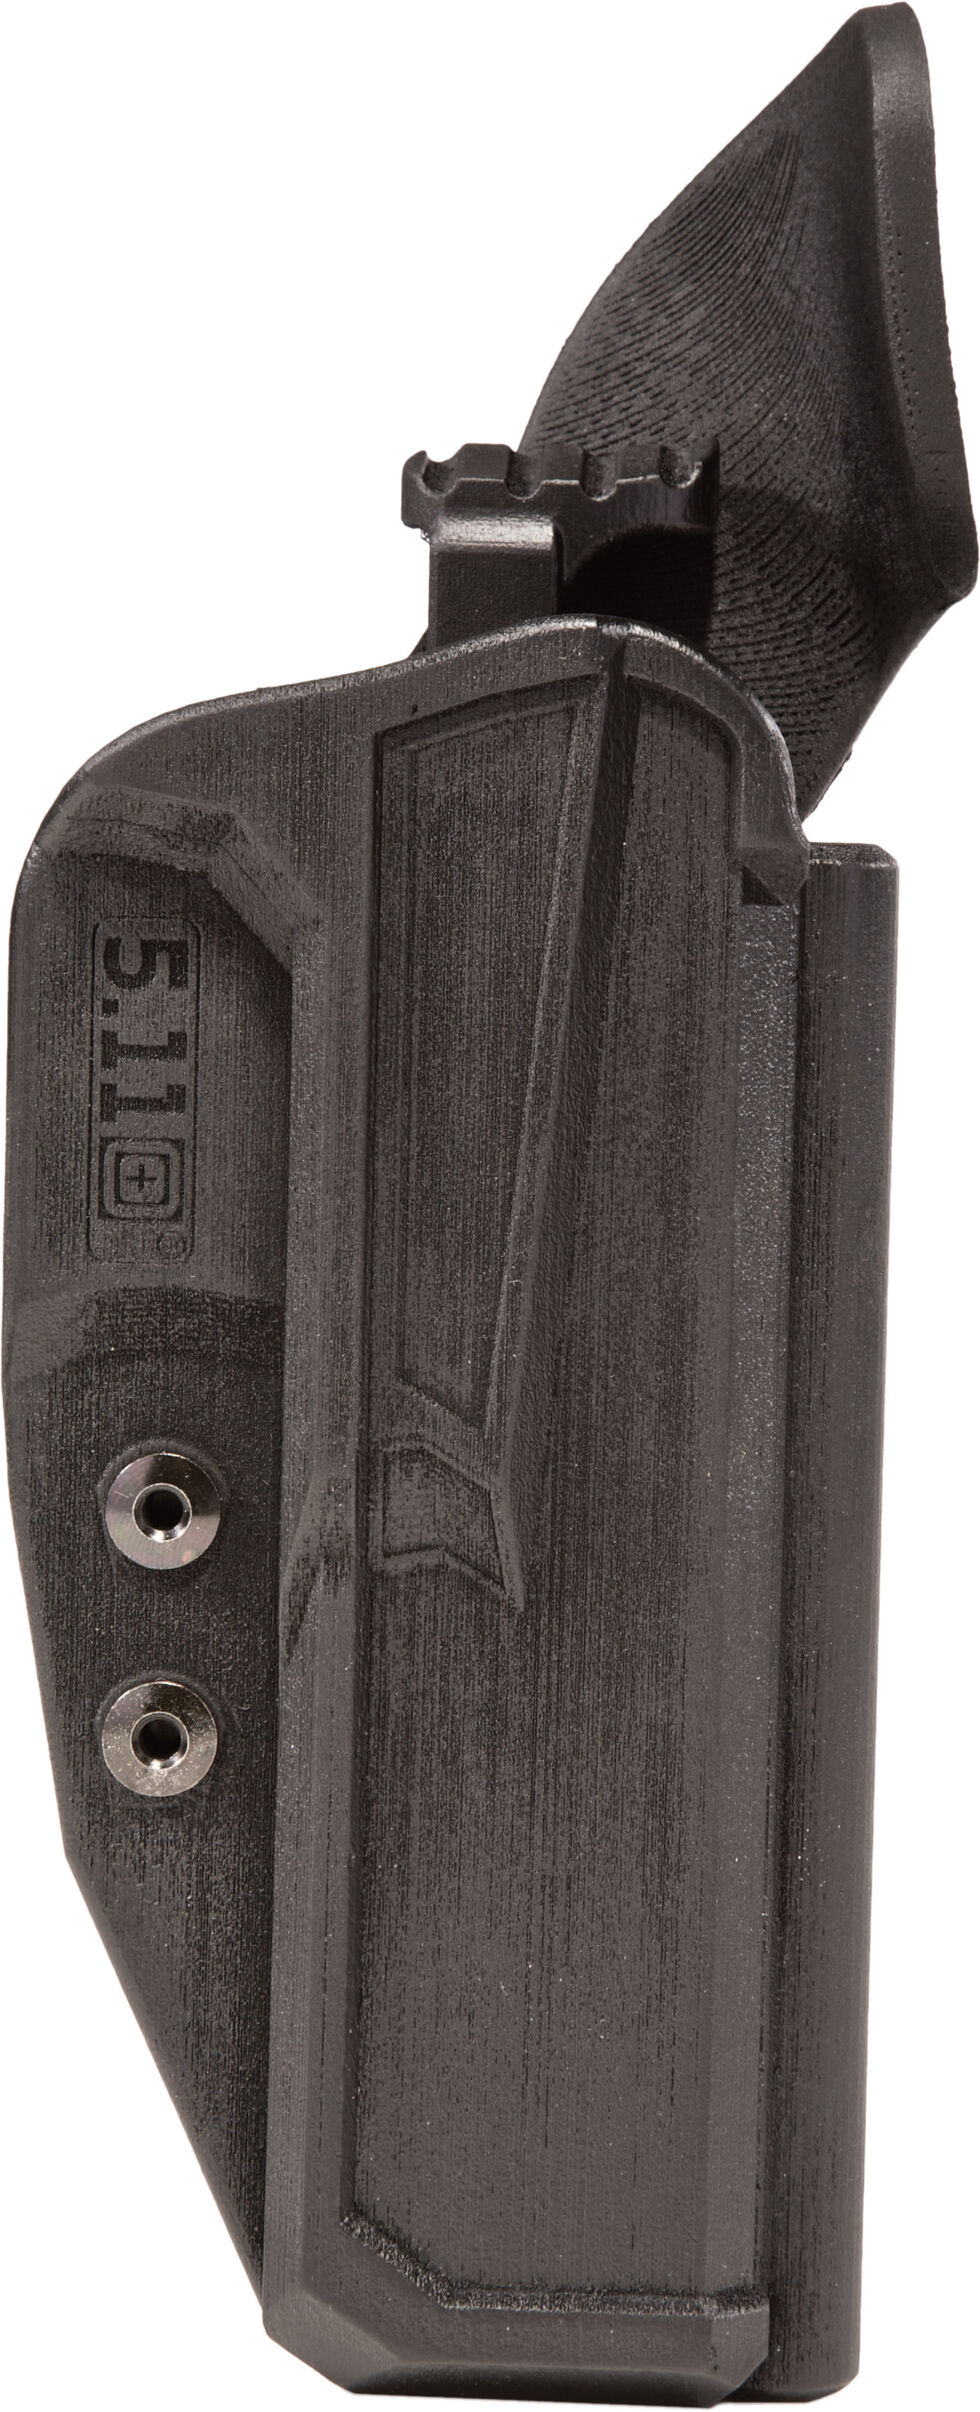 "5.11 Thumb Drive M&P (Compact/Commander Size) .45 R/H - 4"", Black, hi-res"